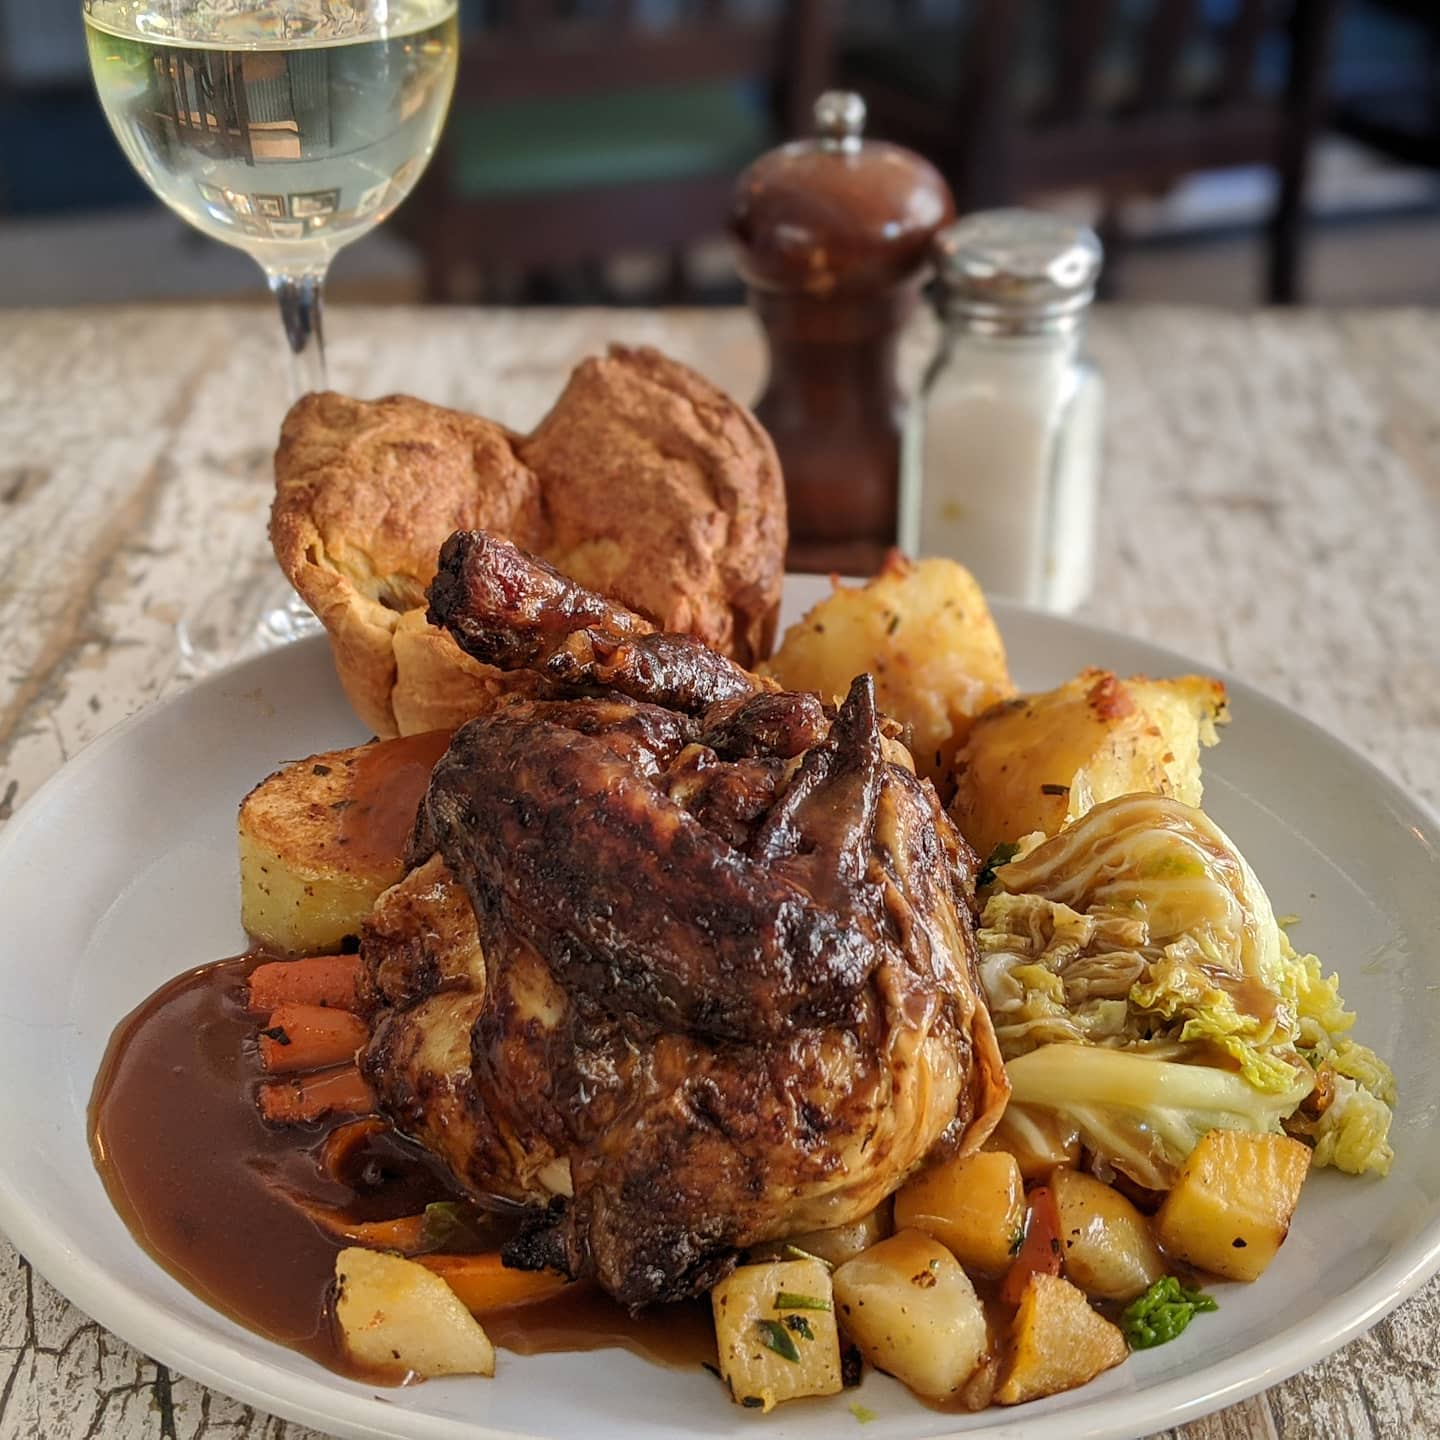 Big news. Ship ROASTS are back! Bam! 💢  Beef, chicken, veggie and vegan 🌿  Book your table to avoid disappointment #linkinbio👆  Also available on Deliveroo 🚚 . . . #hackneypubs #hackneysundayroasts #sundayroasttakeaway #sundayroast #hackneyroasts #sundayroasts #sundayfunday😎 #sundayfunday #bloodymarysunday #bloodymarys #hackneyresident #hackneyresturants #foodie #veganroast #vegansunday #nomnom #londonfoodie #londonfoodguide